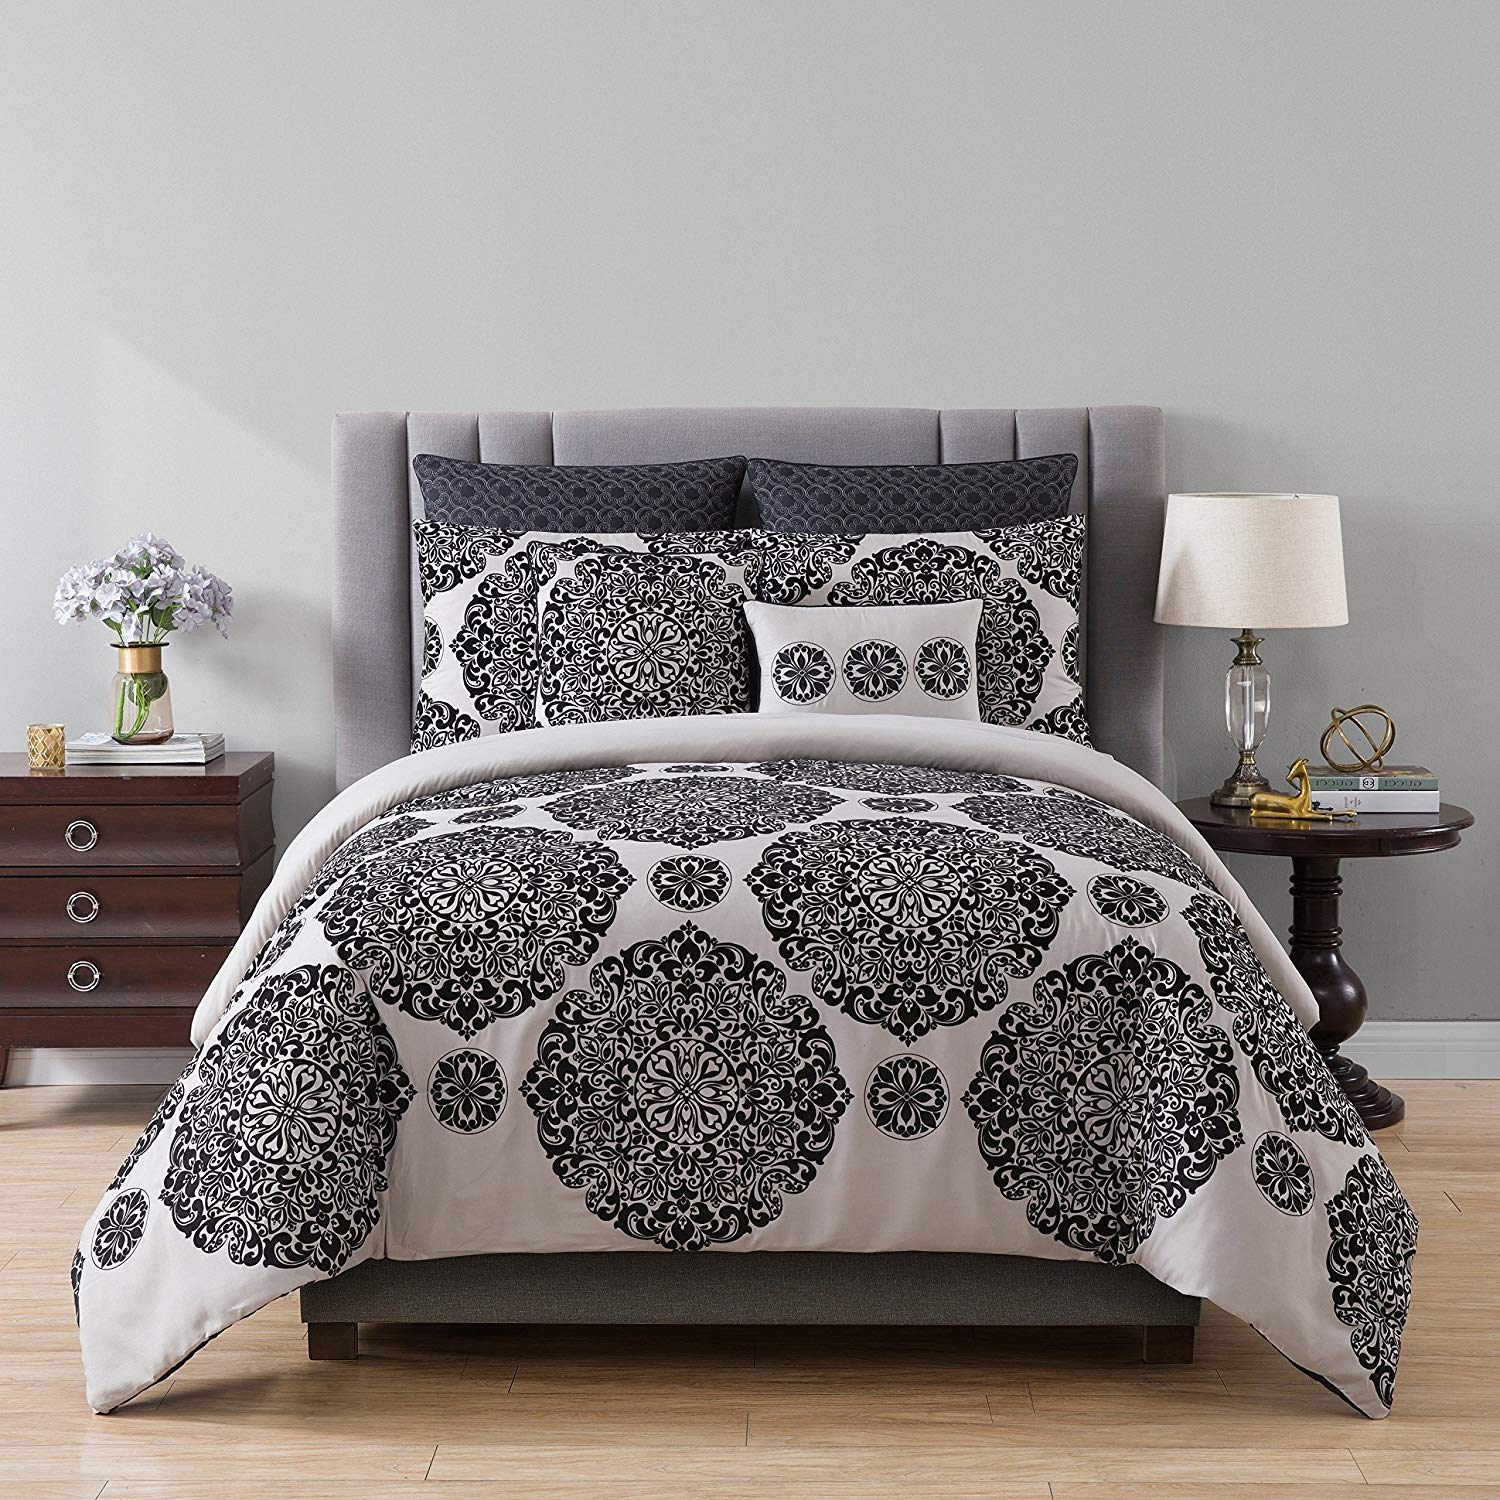 7 Piece Taupe Brown Large Medallion Comforter Full Queen Set, Black Bohemian Themed Floral Moroccan Mandala Framing Motif Pattern, Flocked Textured Reversible Brown Adult Bedding Bedroom, Polyester